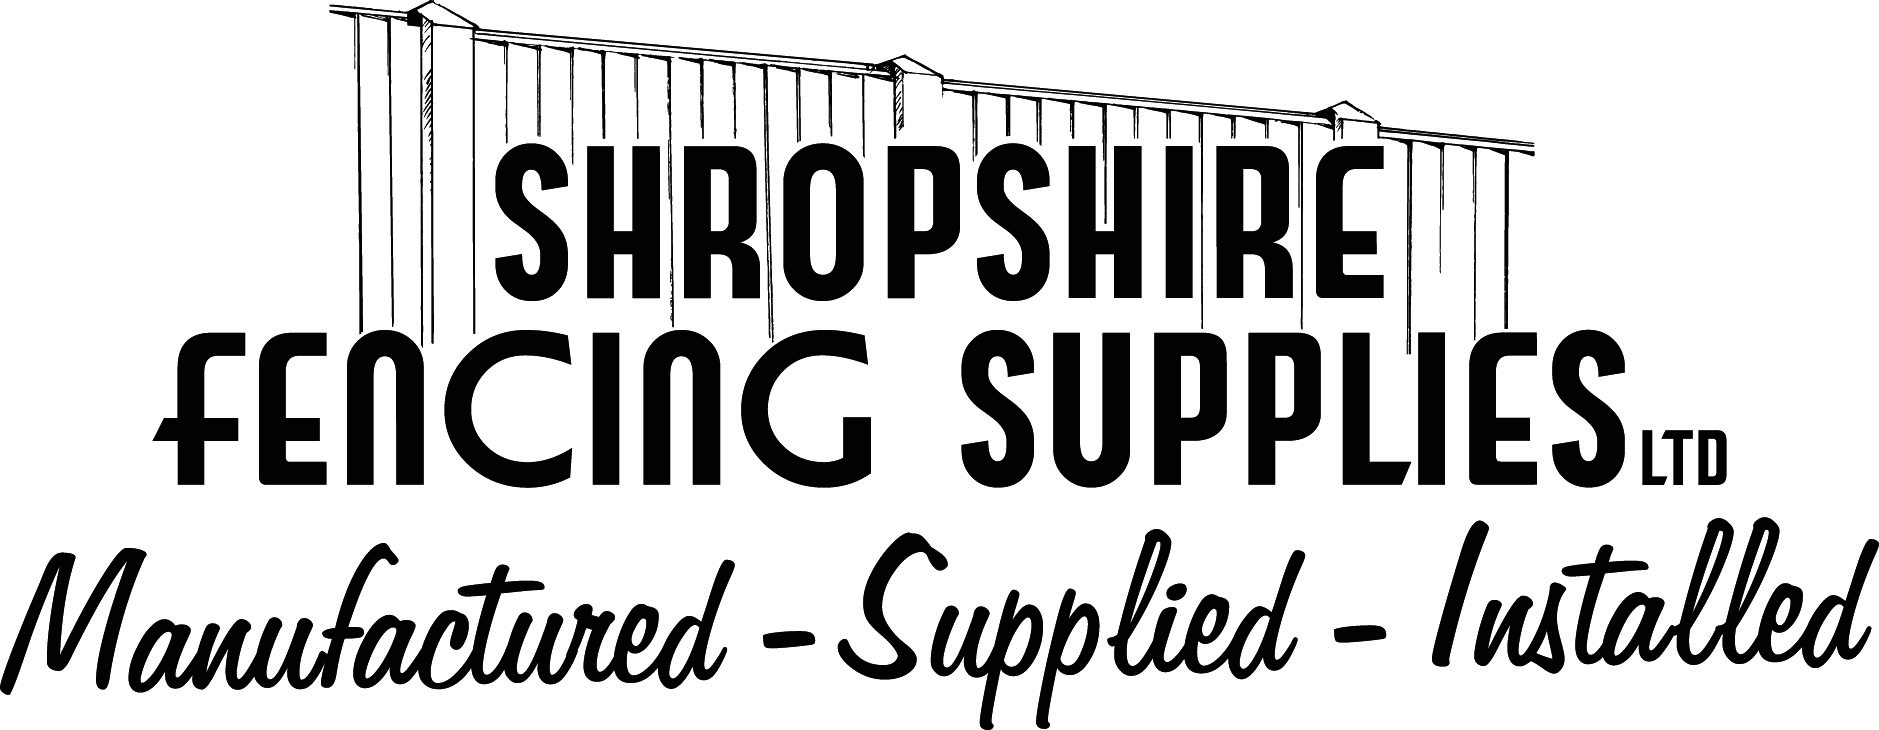 SHROPSHIRE FENCING SUPPLIES LTD logo